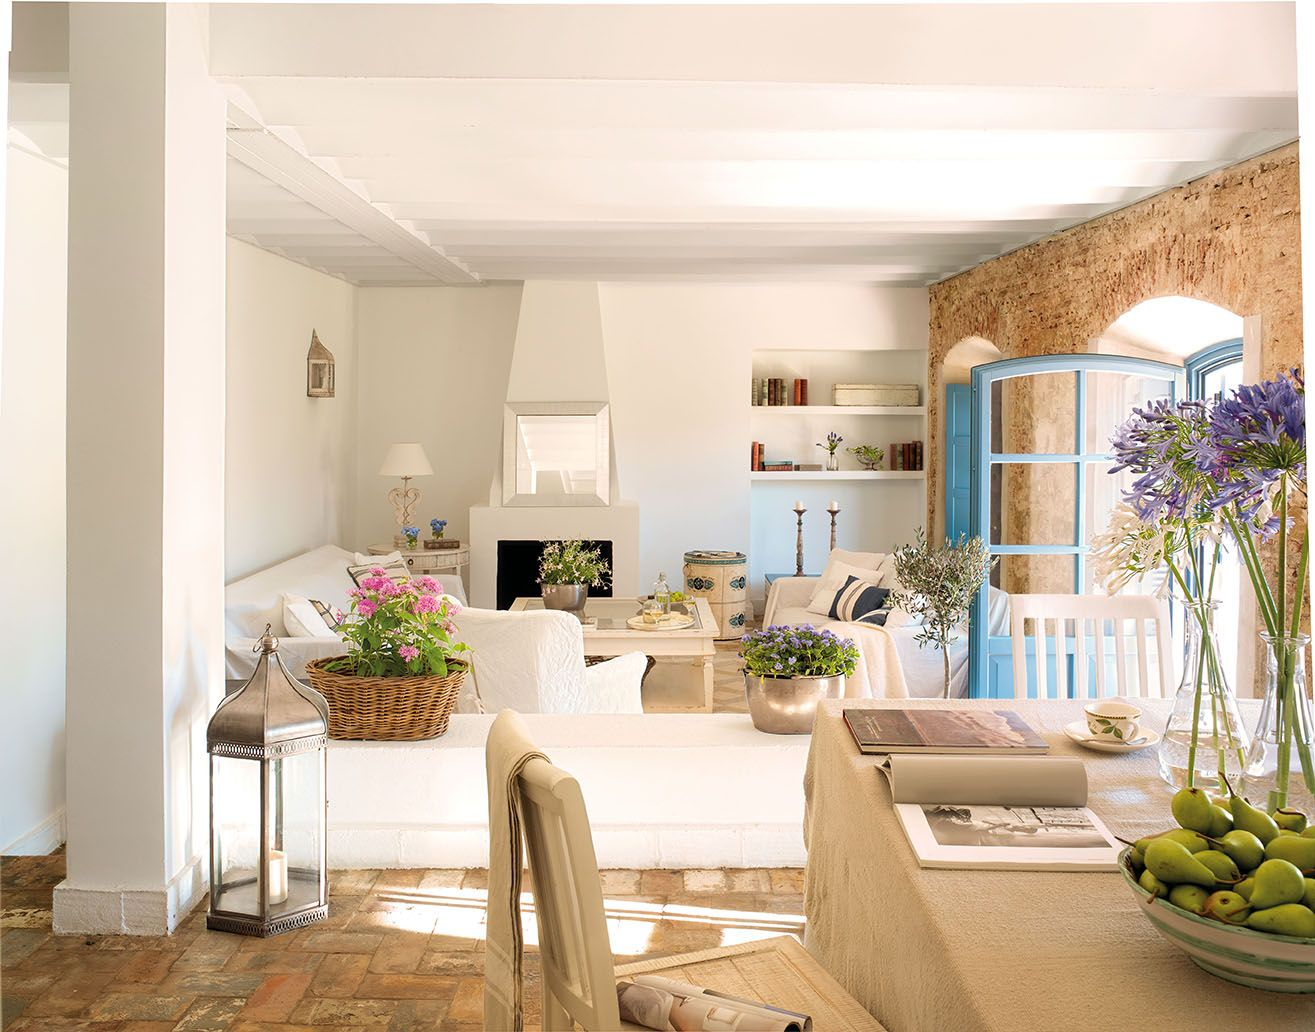 Pin by Labeto Foufri on maisons | Pinterest | Living rooms, Room and ...